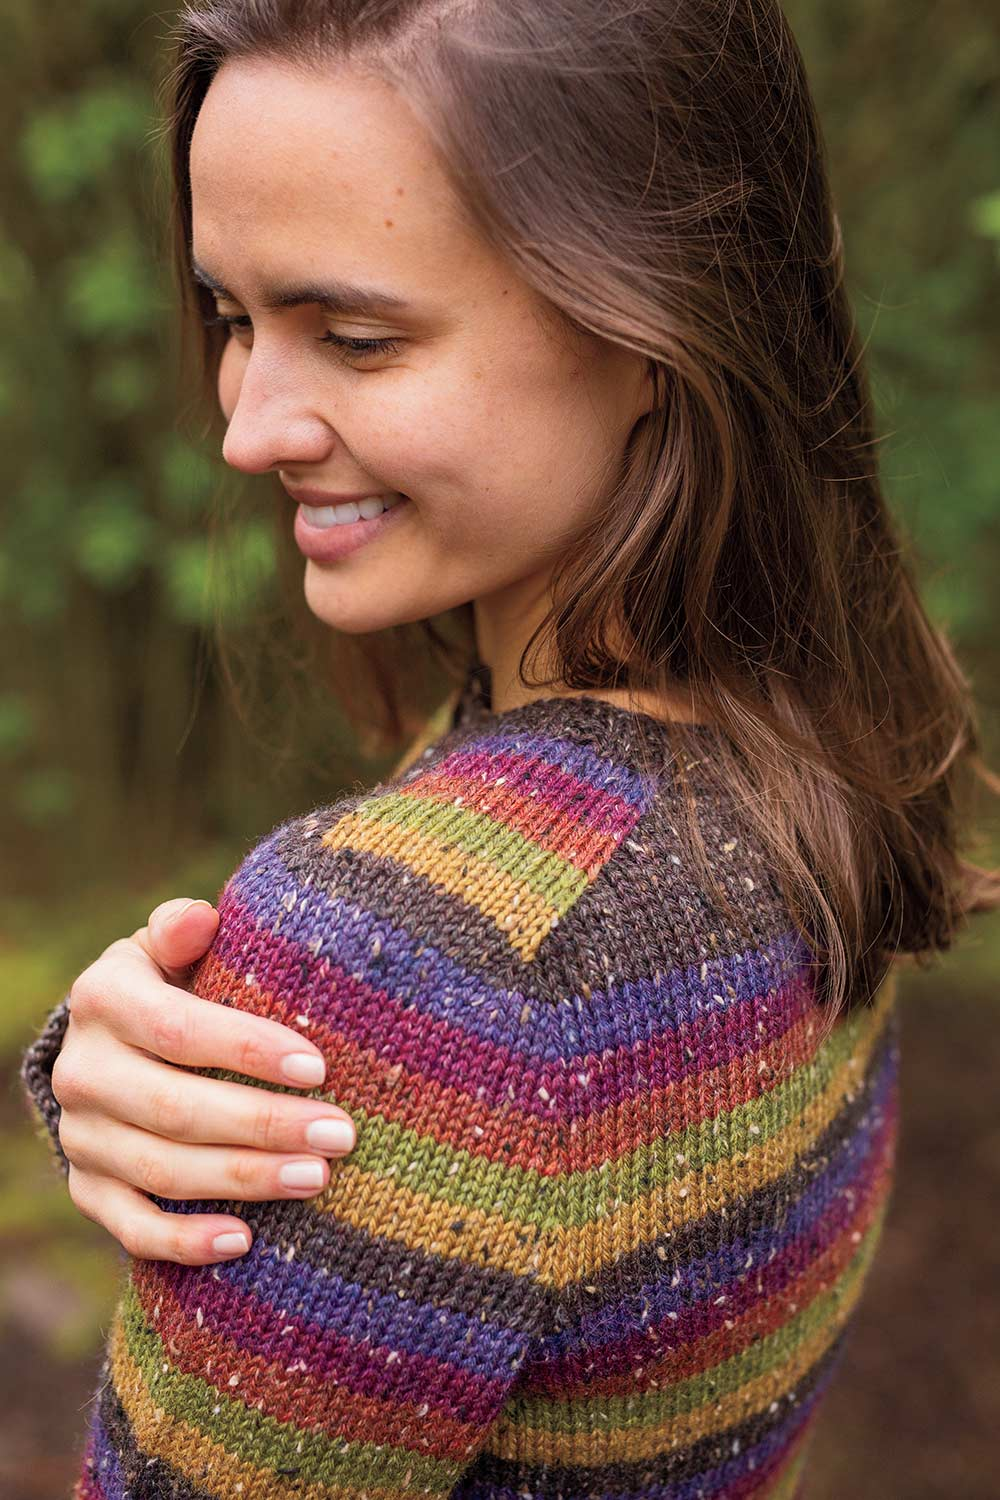 View of striped saddle shoulder showing the unbroken stripe progression beginning at the neck and running down the sleeve. Sweater is worked top down.